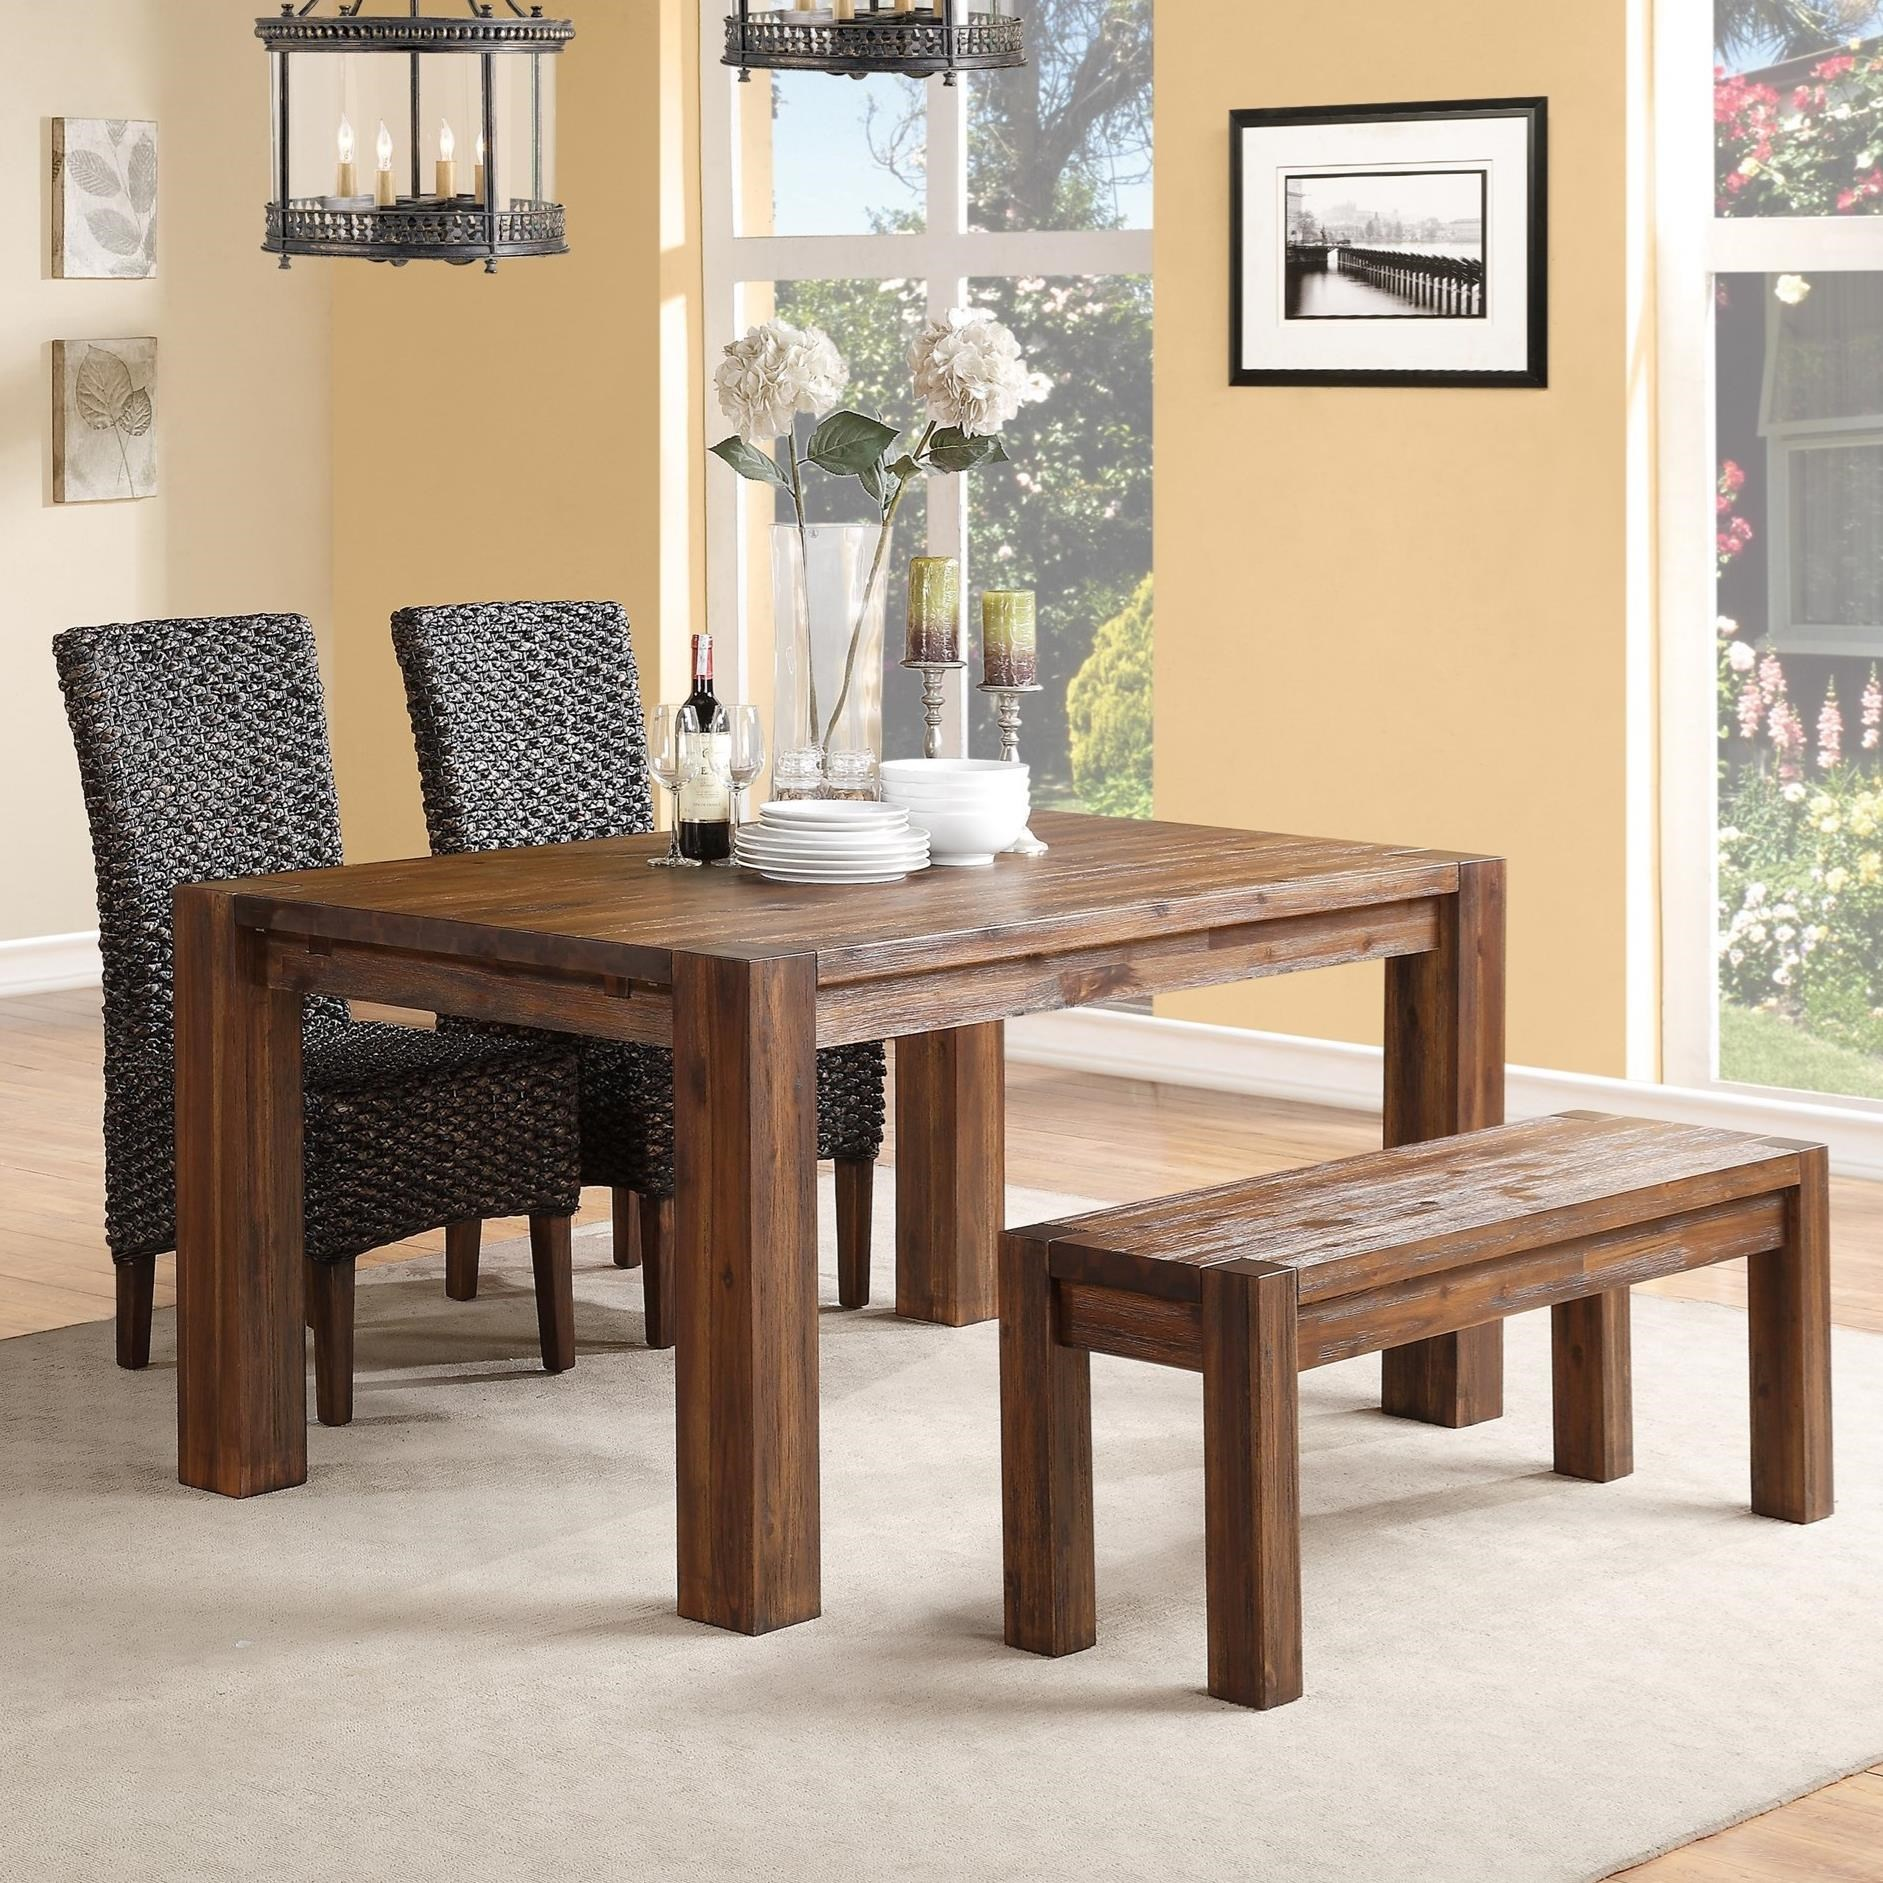 Dining Table & Chair Set with Bench